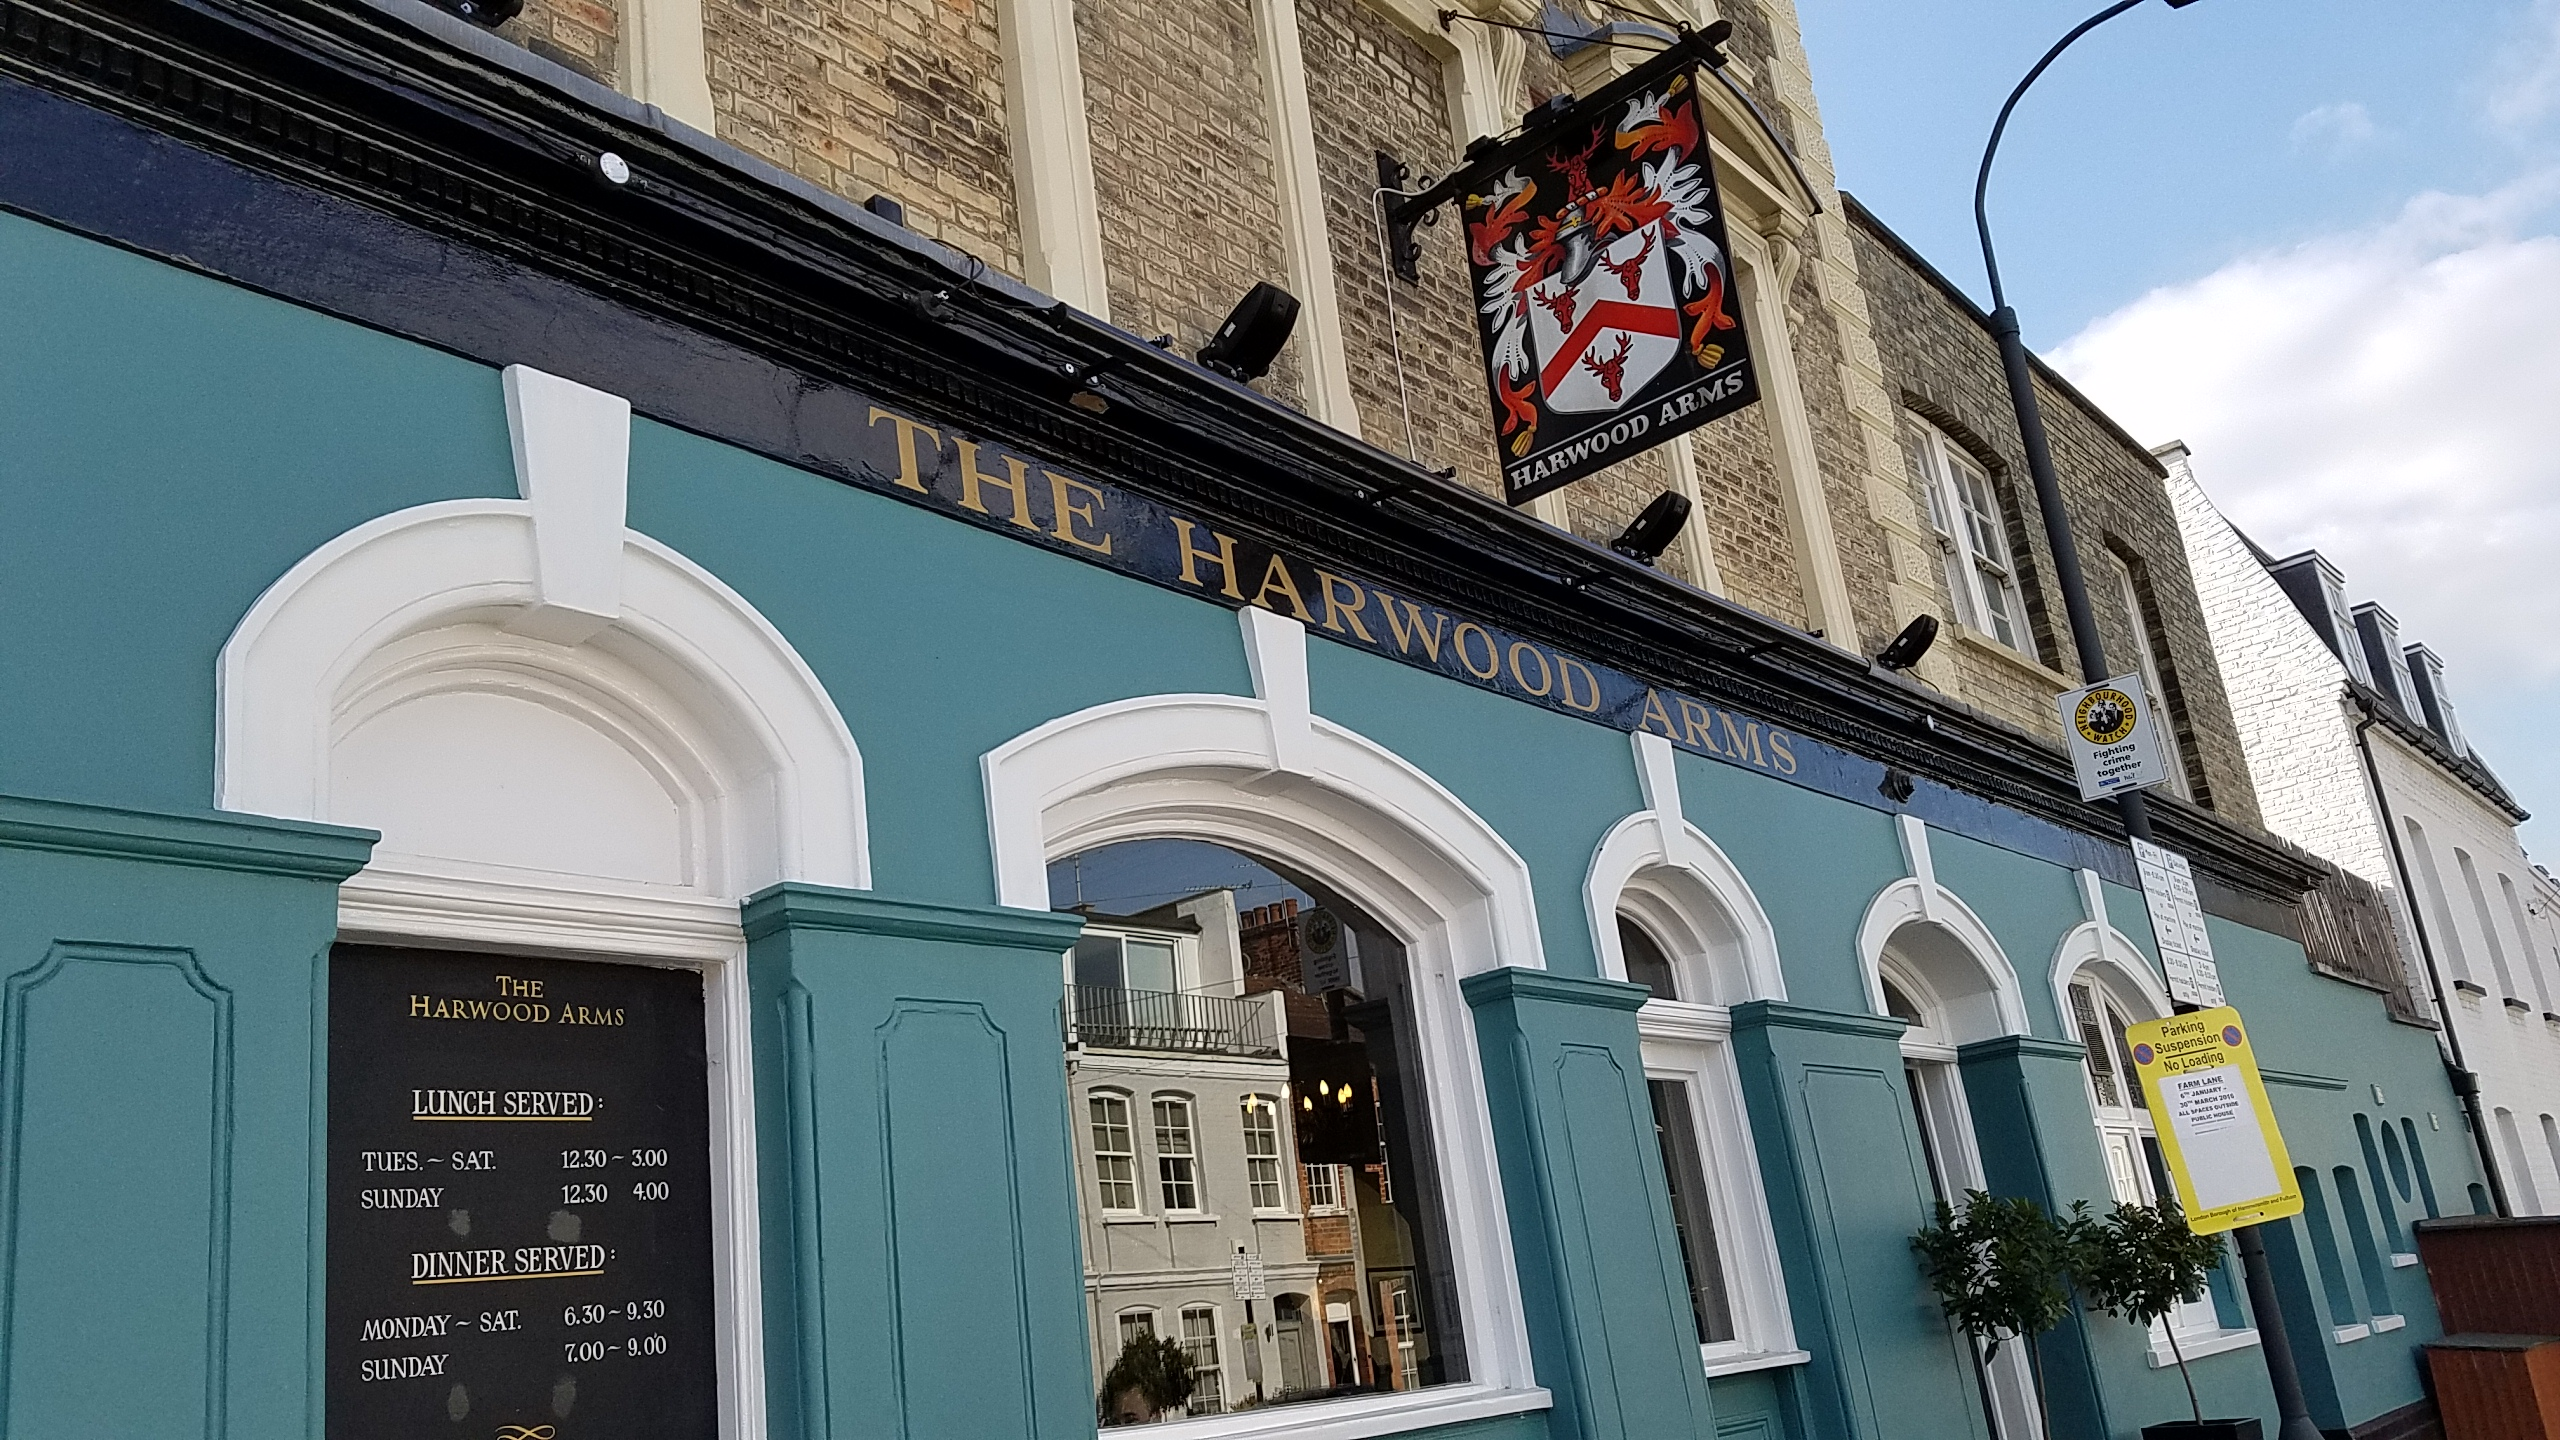 The Harwood Arms *